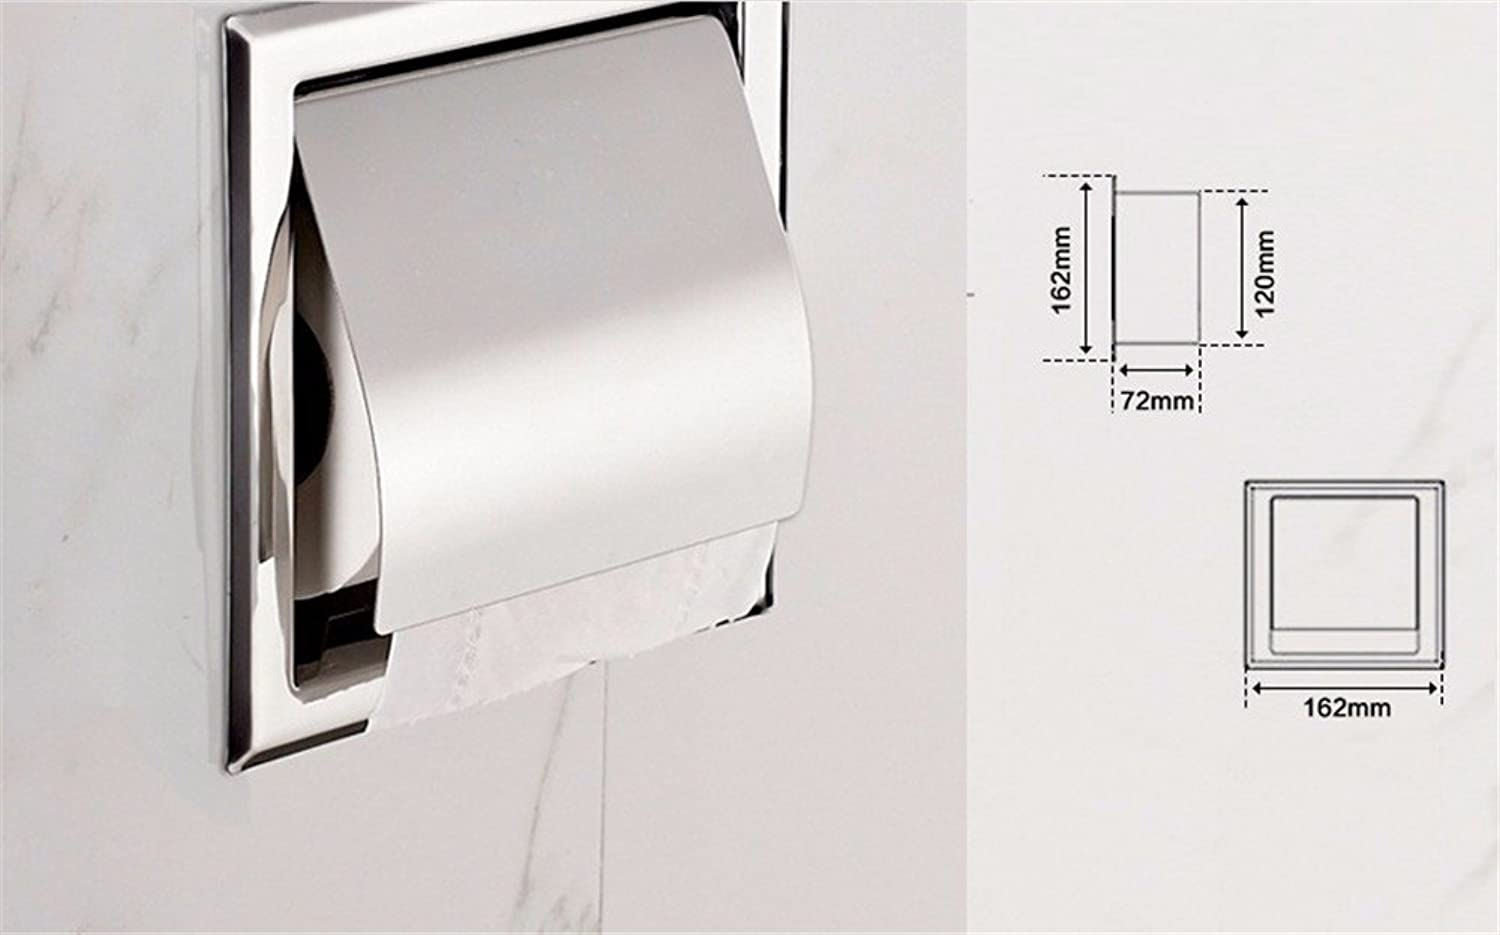 Stainless Steel Bathroom Shelf Silver polishing Wall-Mounted Paper Towel Holder Square Toilet Paper Holder,C